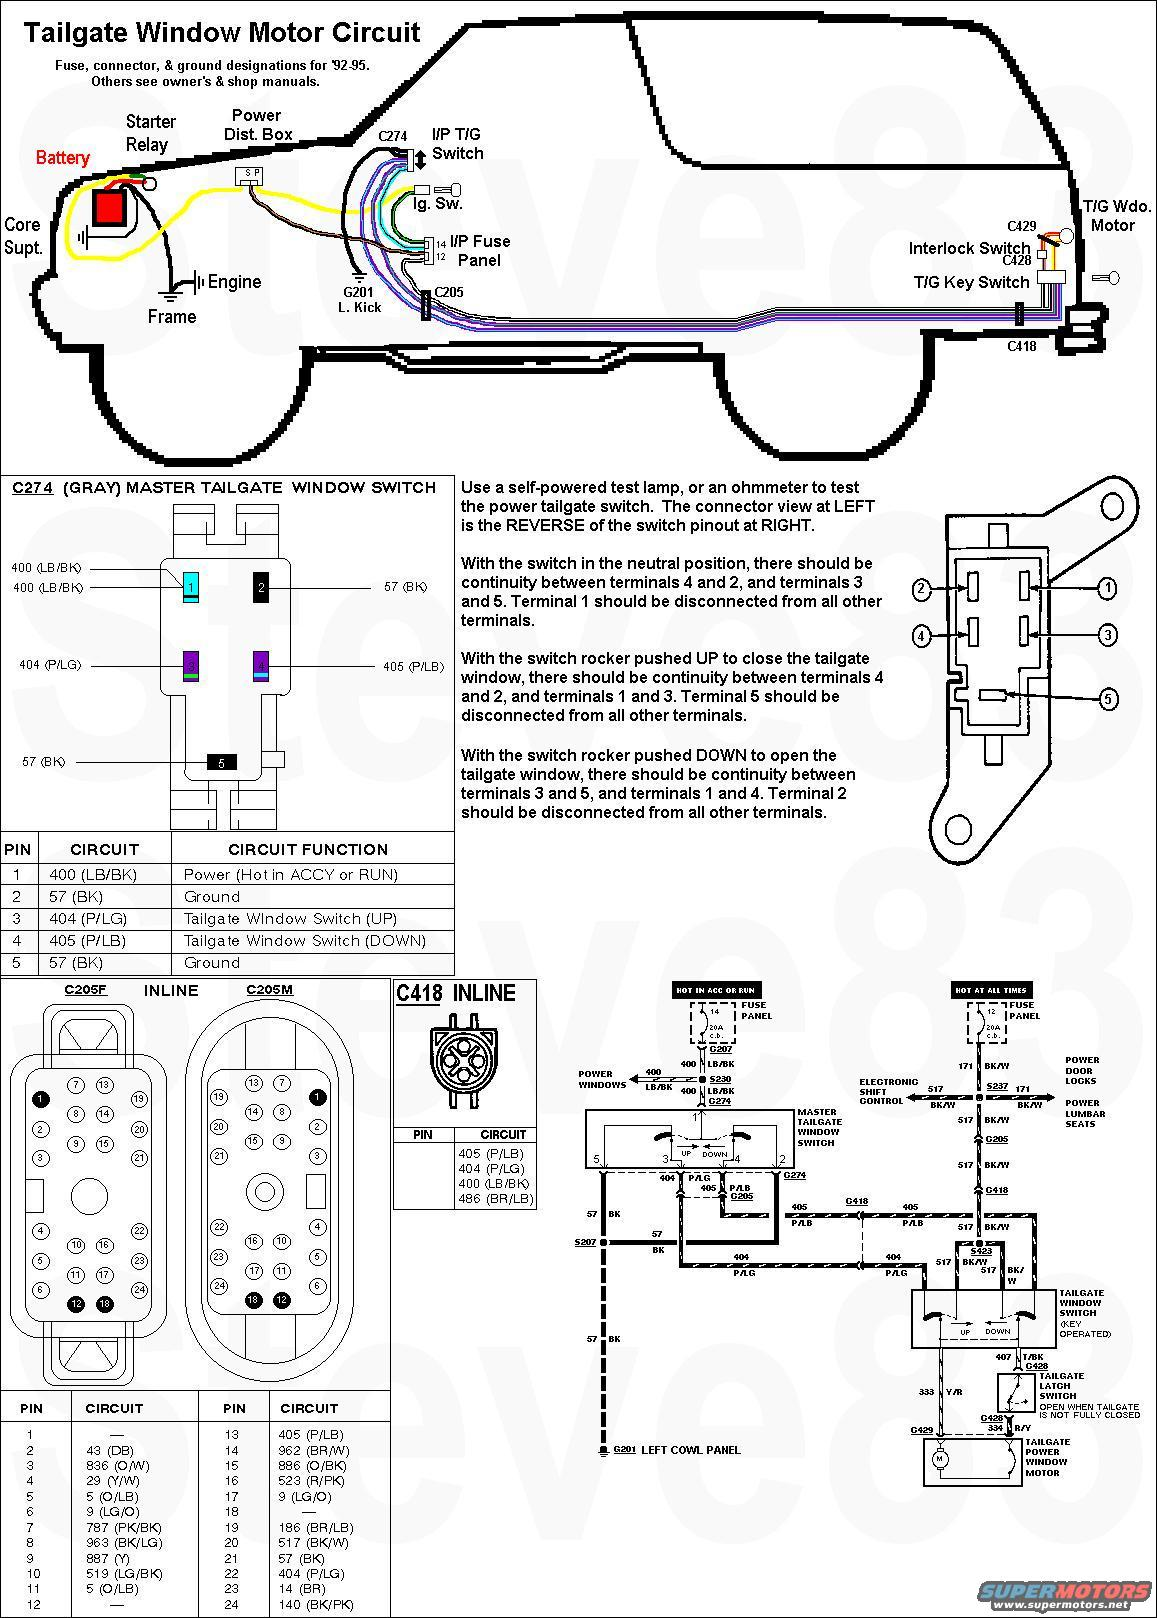 wmtgmotorwiring wiring diagram 1975 ford bronco the wiring diagram readingrat net 79 bronco fuse box diagram at webbmarketing.co